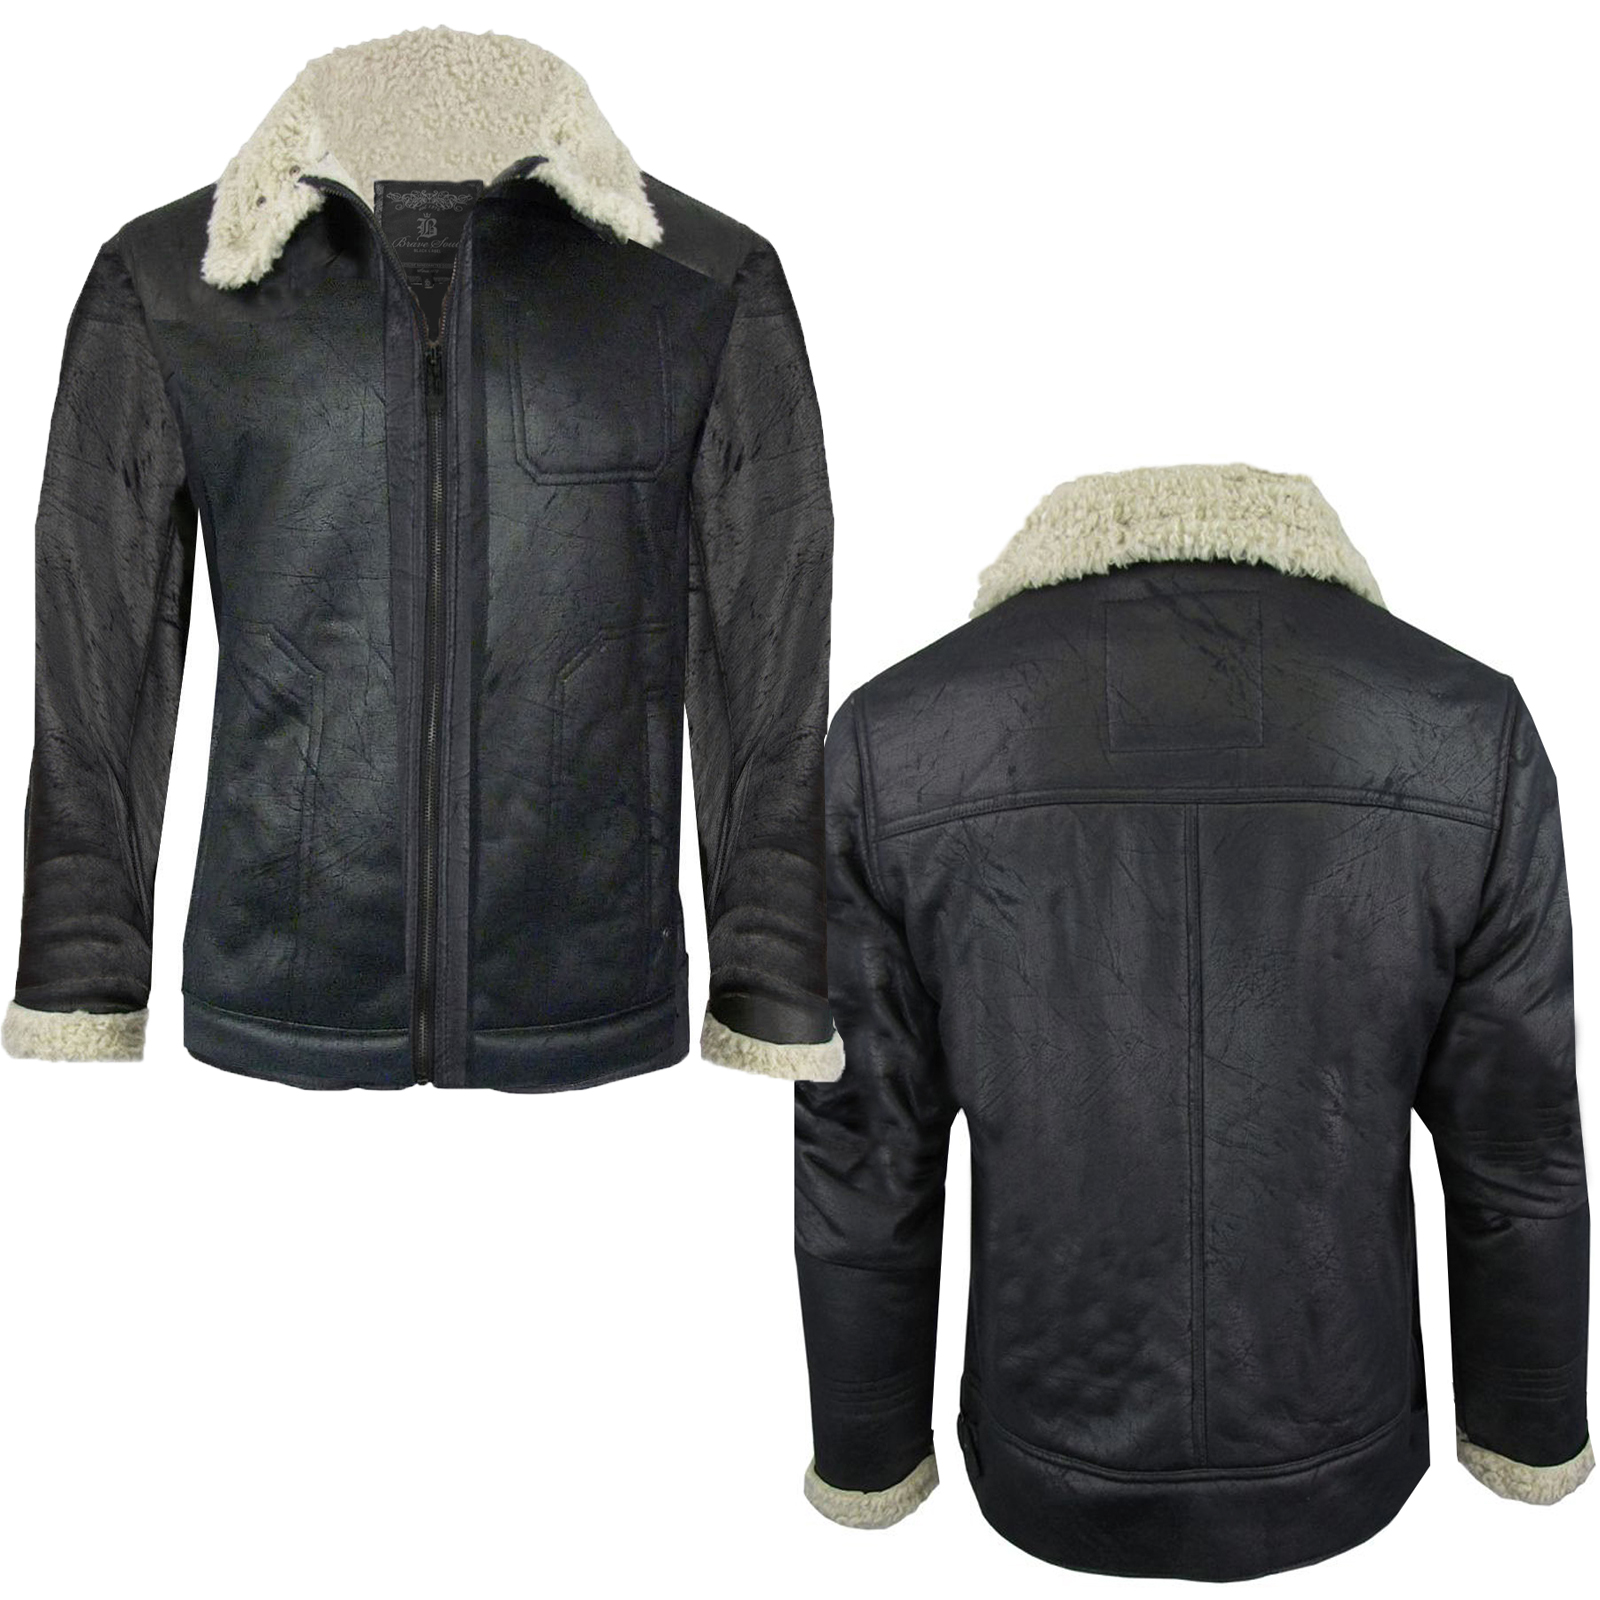 Mens Suede Jackets men's clothing, men's outerwear, men's jackets, men, doublju and outerwear Find this Pin and more on Fashion by Daniel Becker. Mens jacket High Neck Suede Jacket .